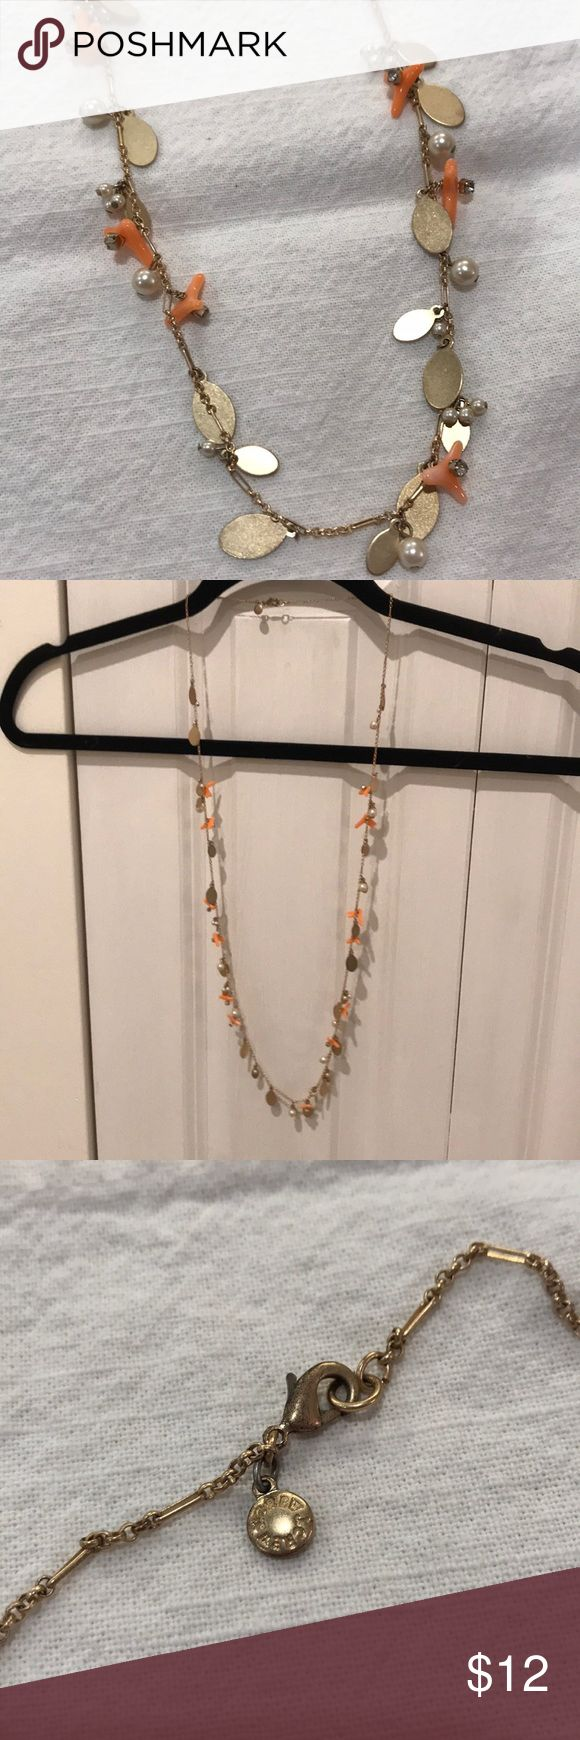 """J. Crew coral statement necklace J. Crew metal statement necklace. 36"""" long. No missing beads, no chips, with bits of coral throughout. Clasp shows minimal wear. J. Crew Jewelry Necklaces"""